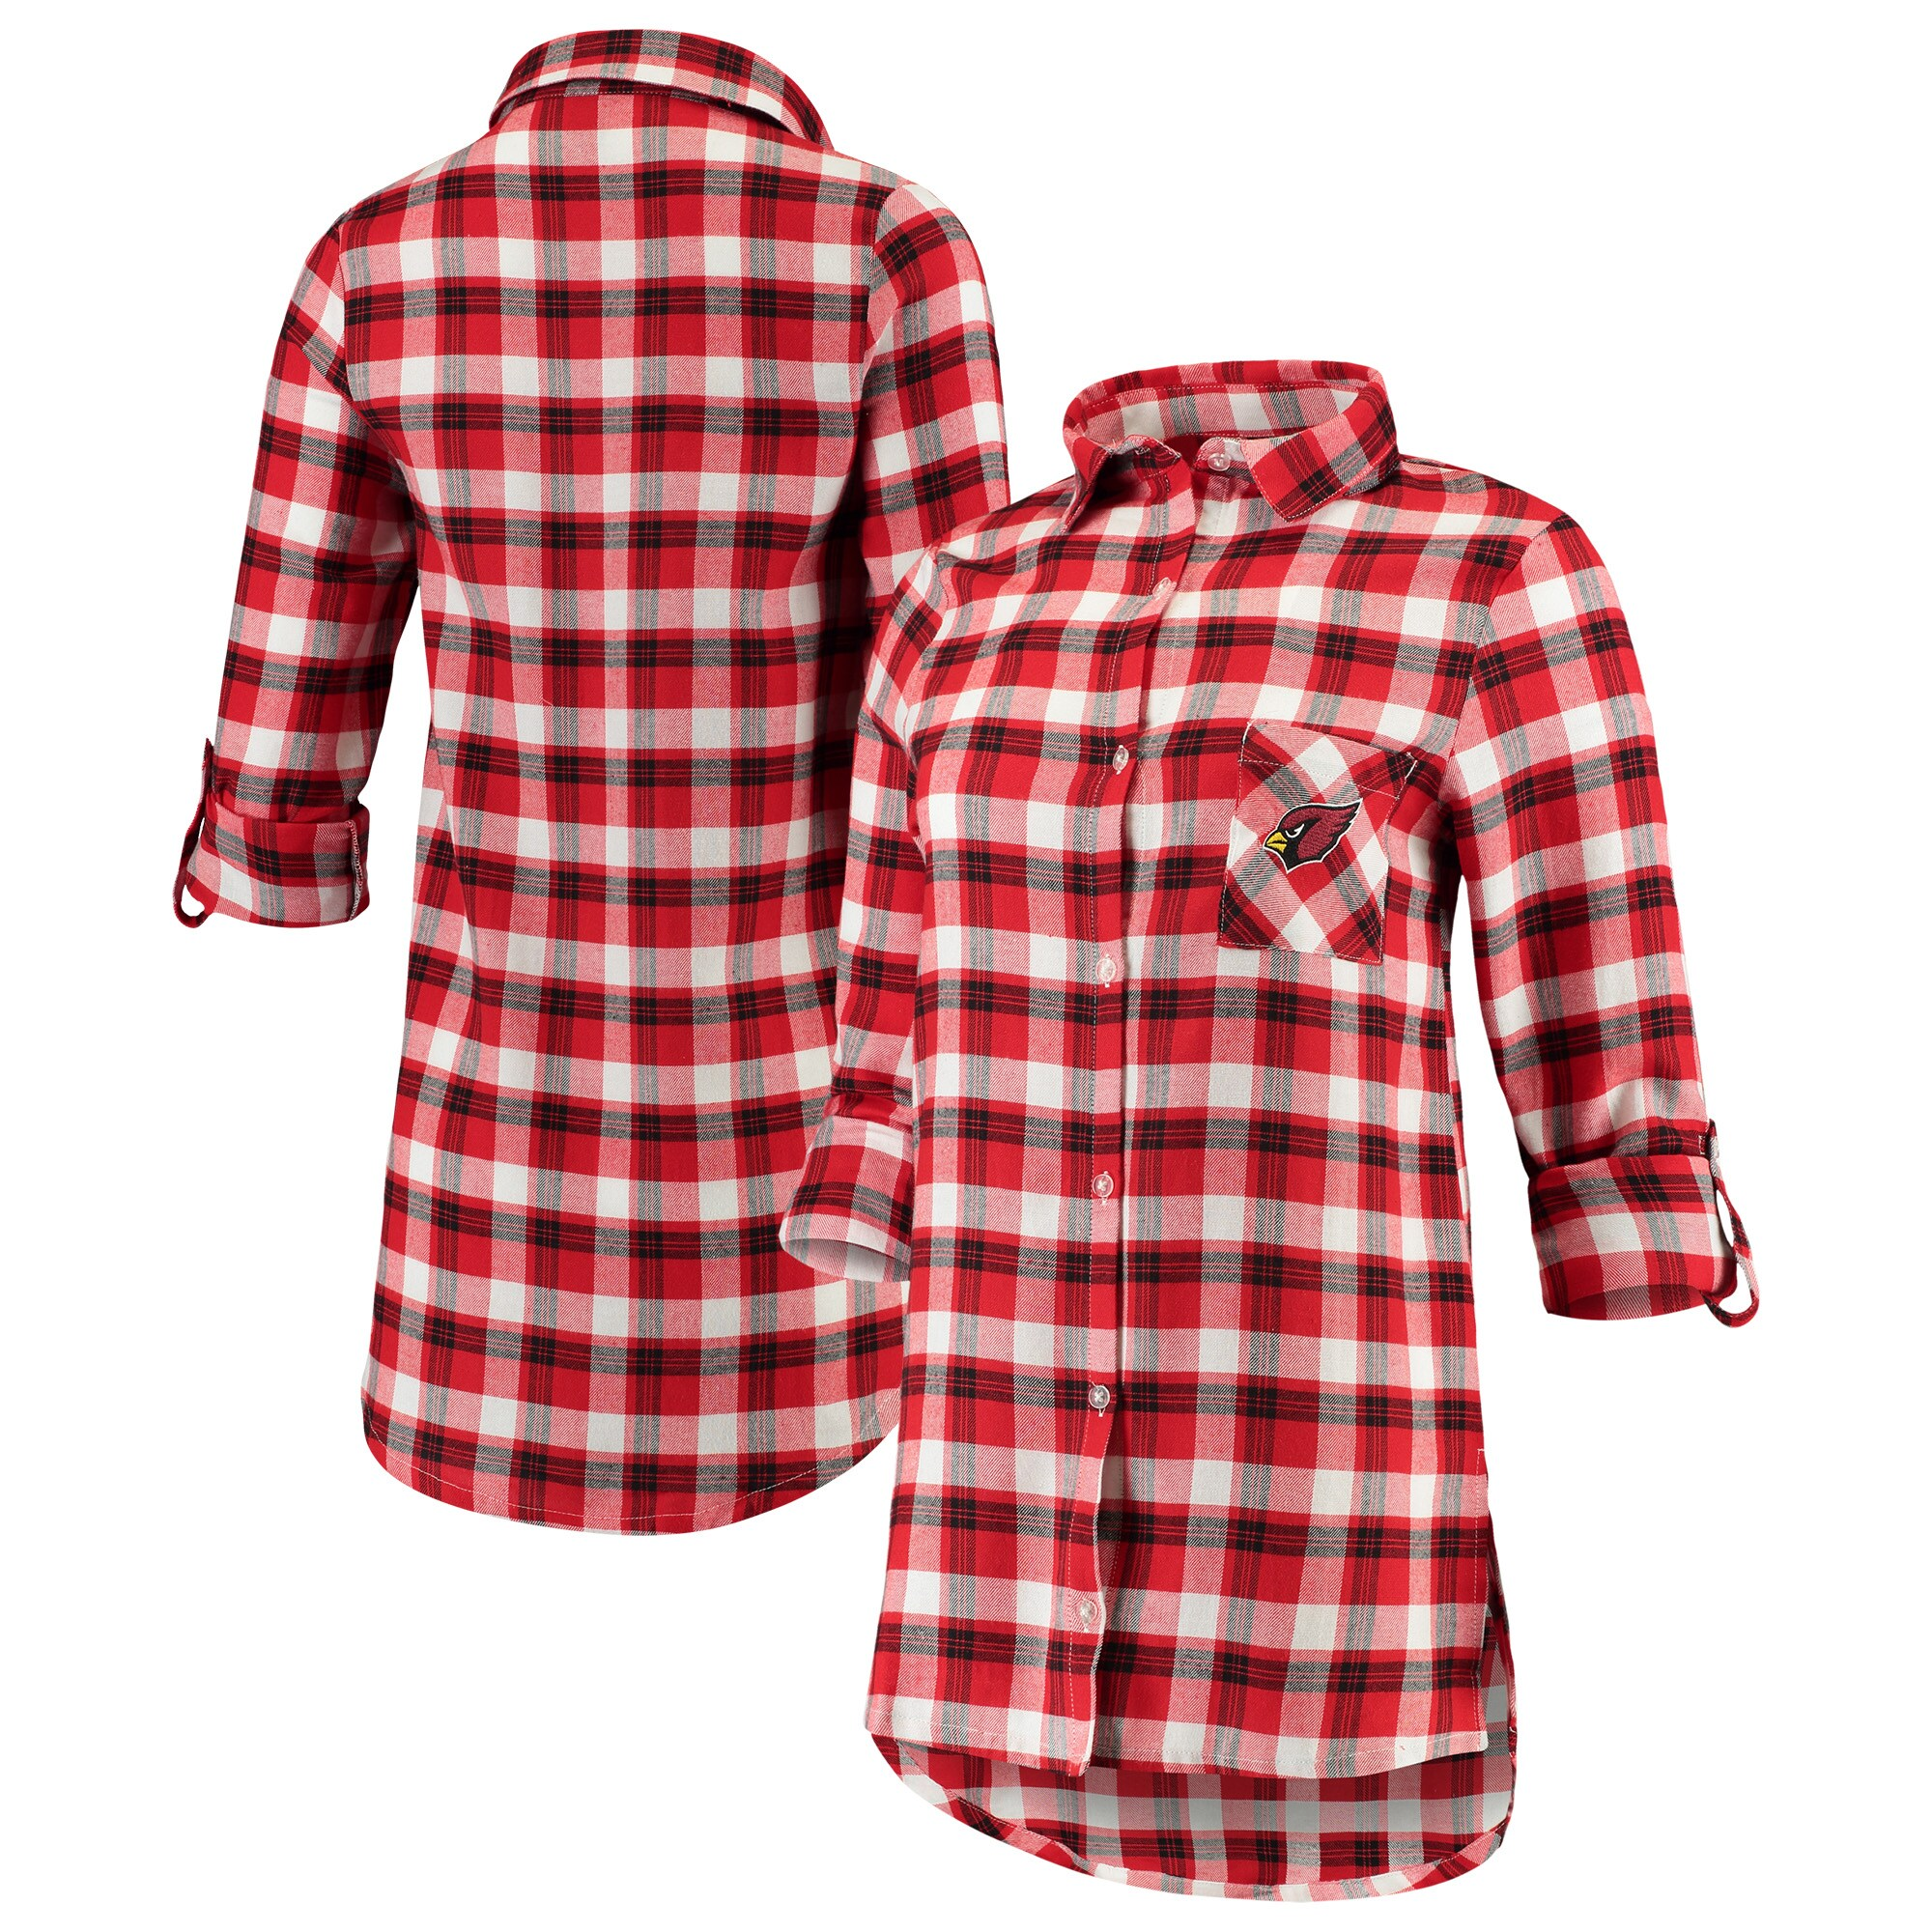 Arizona Cardinals Concepts Sport Women's Piedmont Flannel Button-Up Long Sleeve Shirt - Cardinal/Black